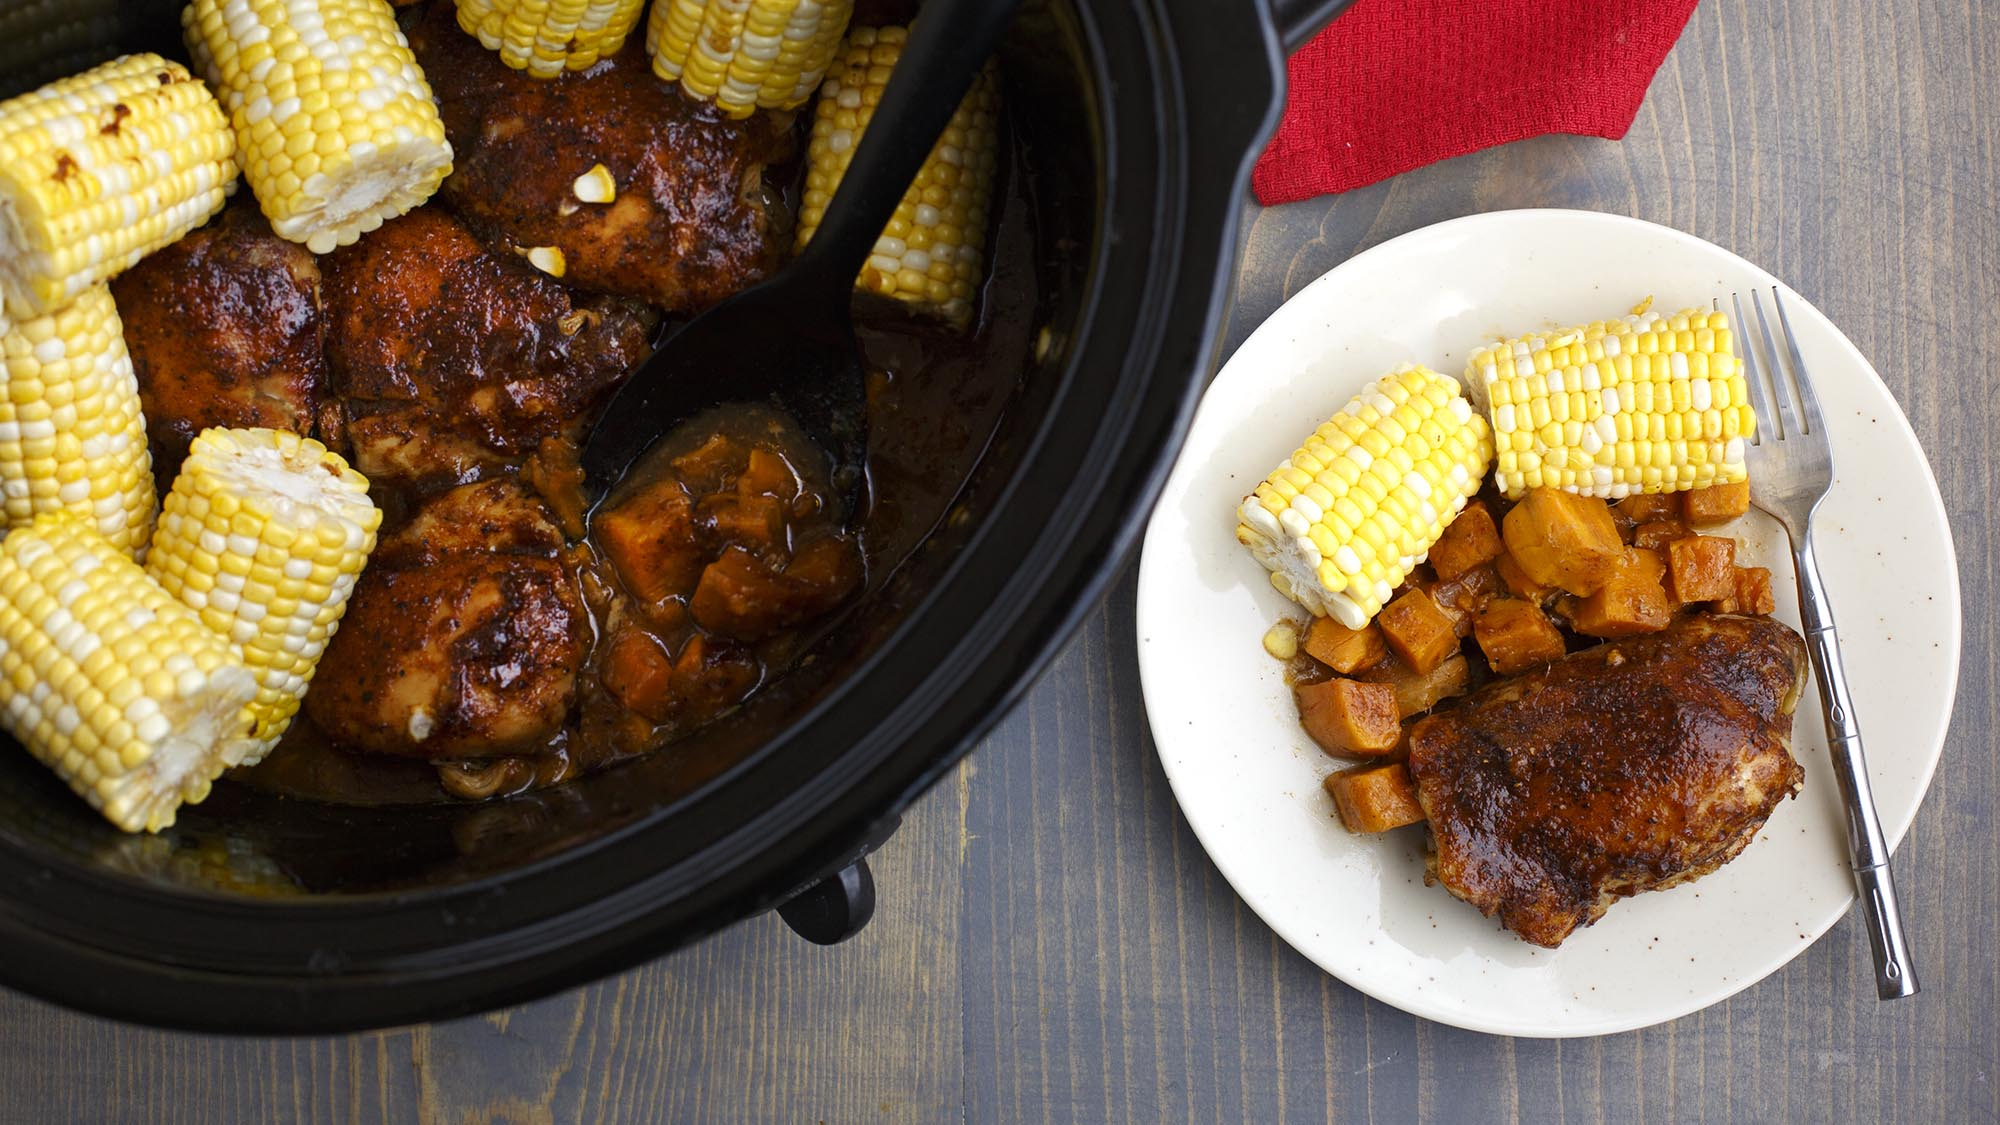 Slow_cookers_bourbon_chicken_and_vegetables_2000x1125.jpg